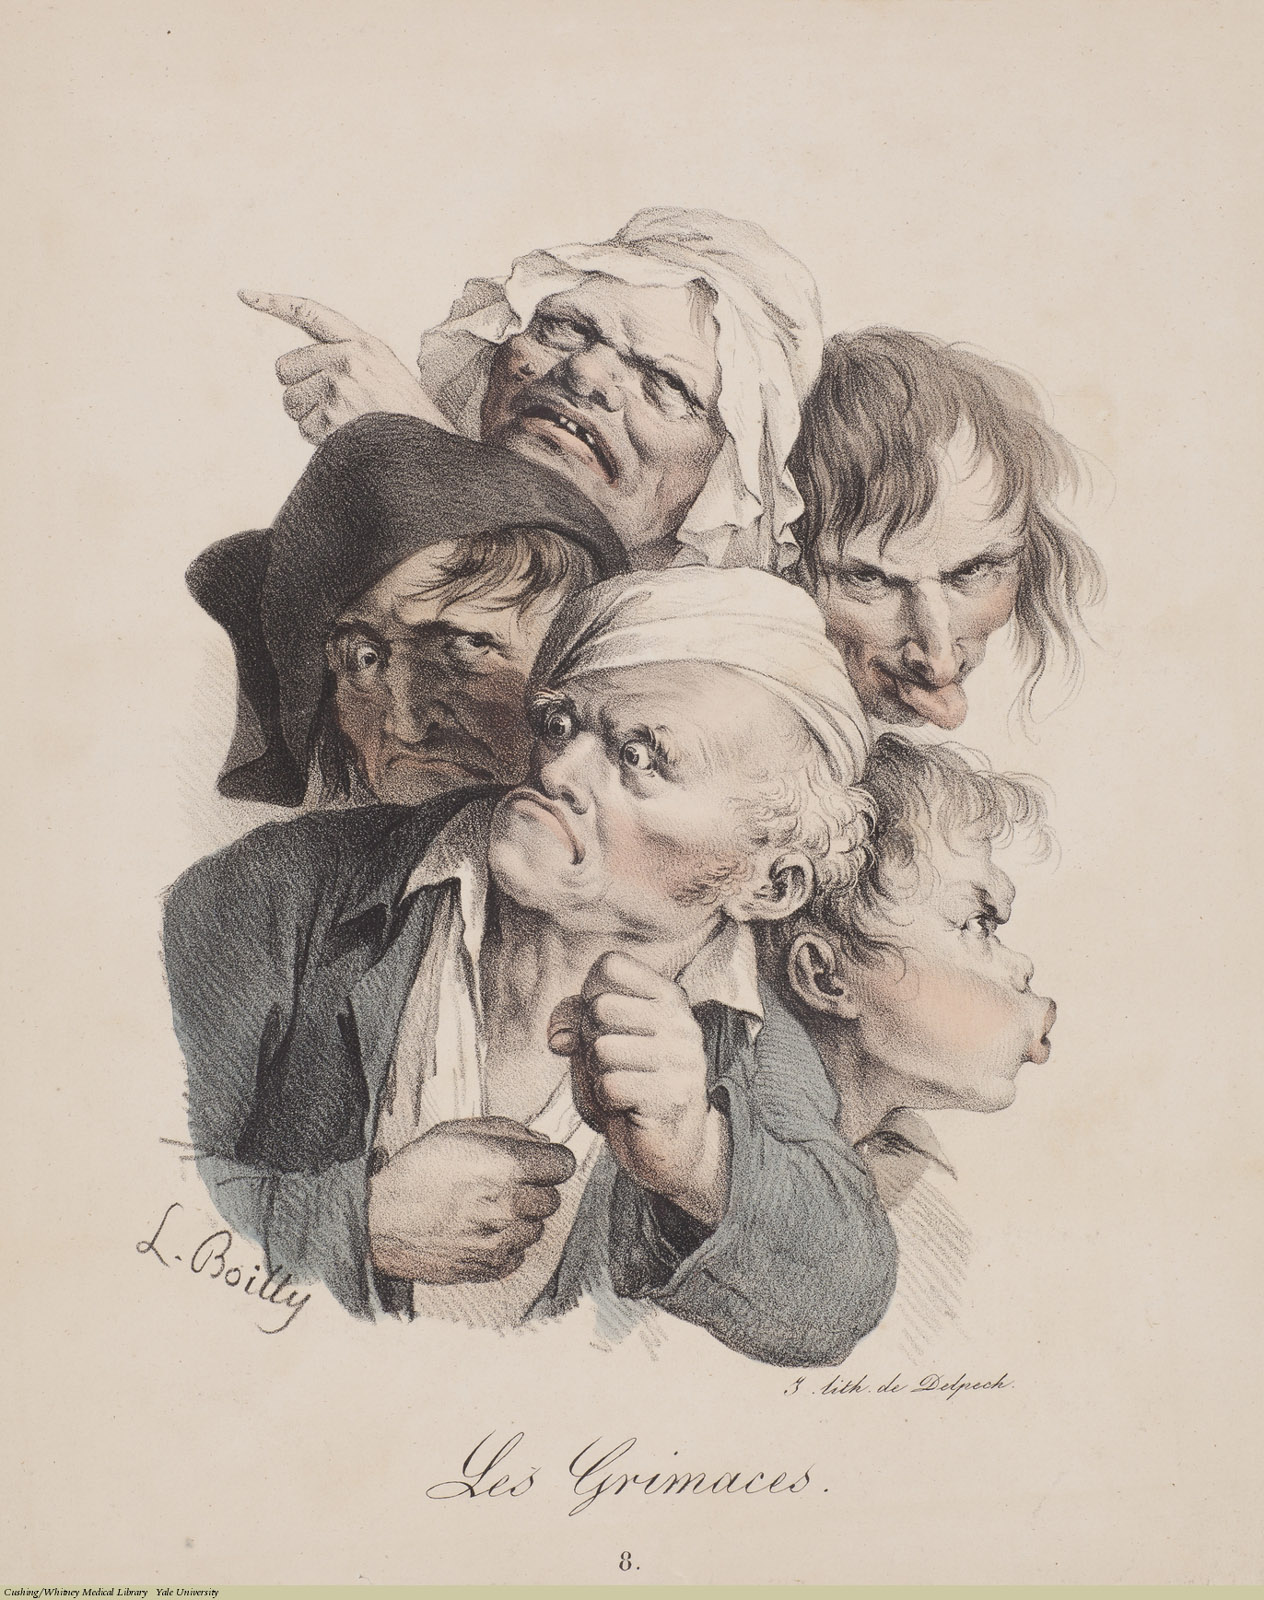 Les Grimaces 8, Louis-Léopold Boilly, Lithograph, 1823.